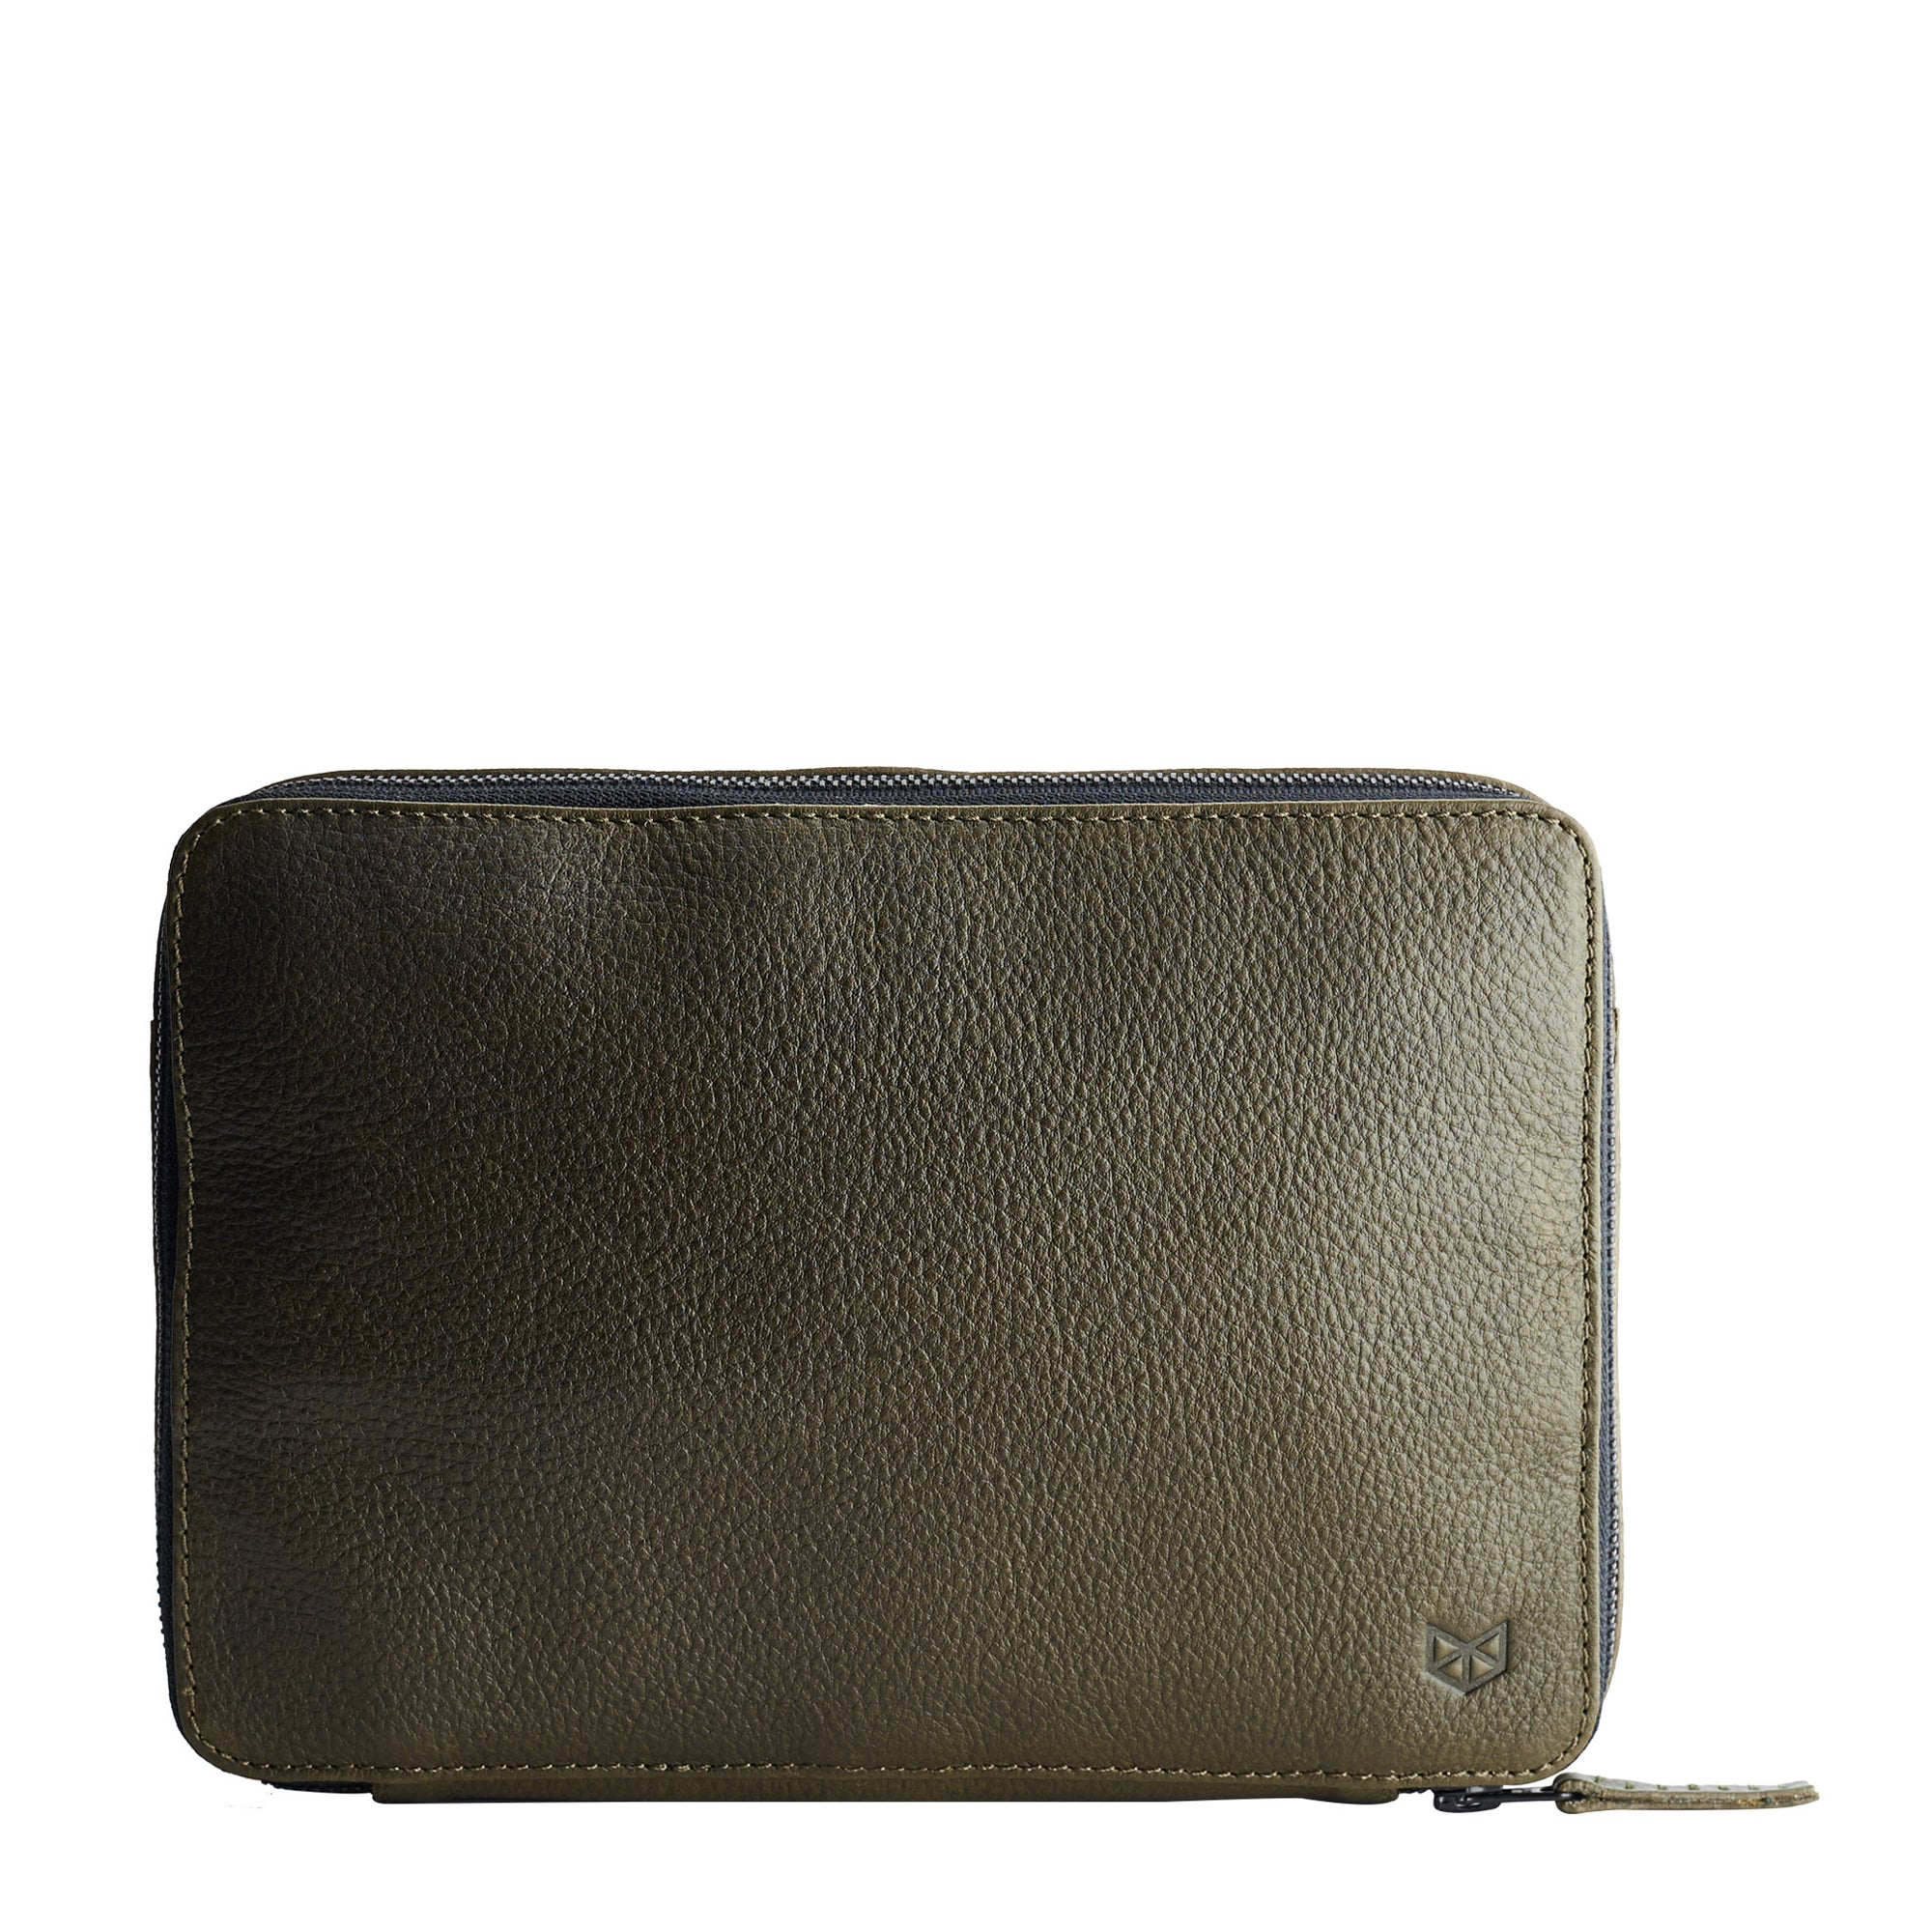 Gadget Travel Bag · Military Green